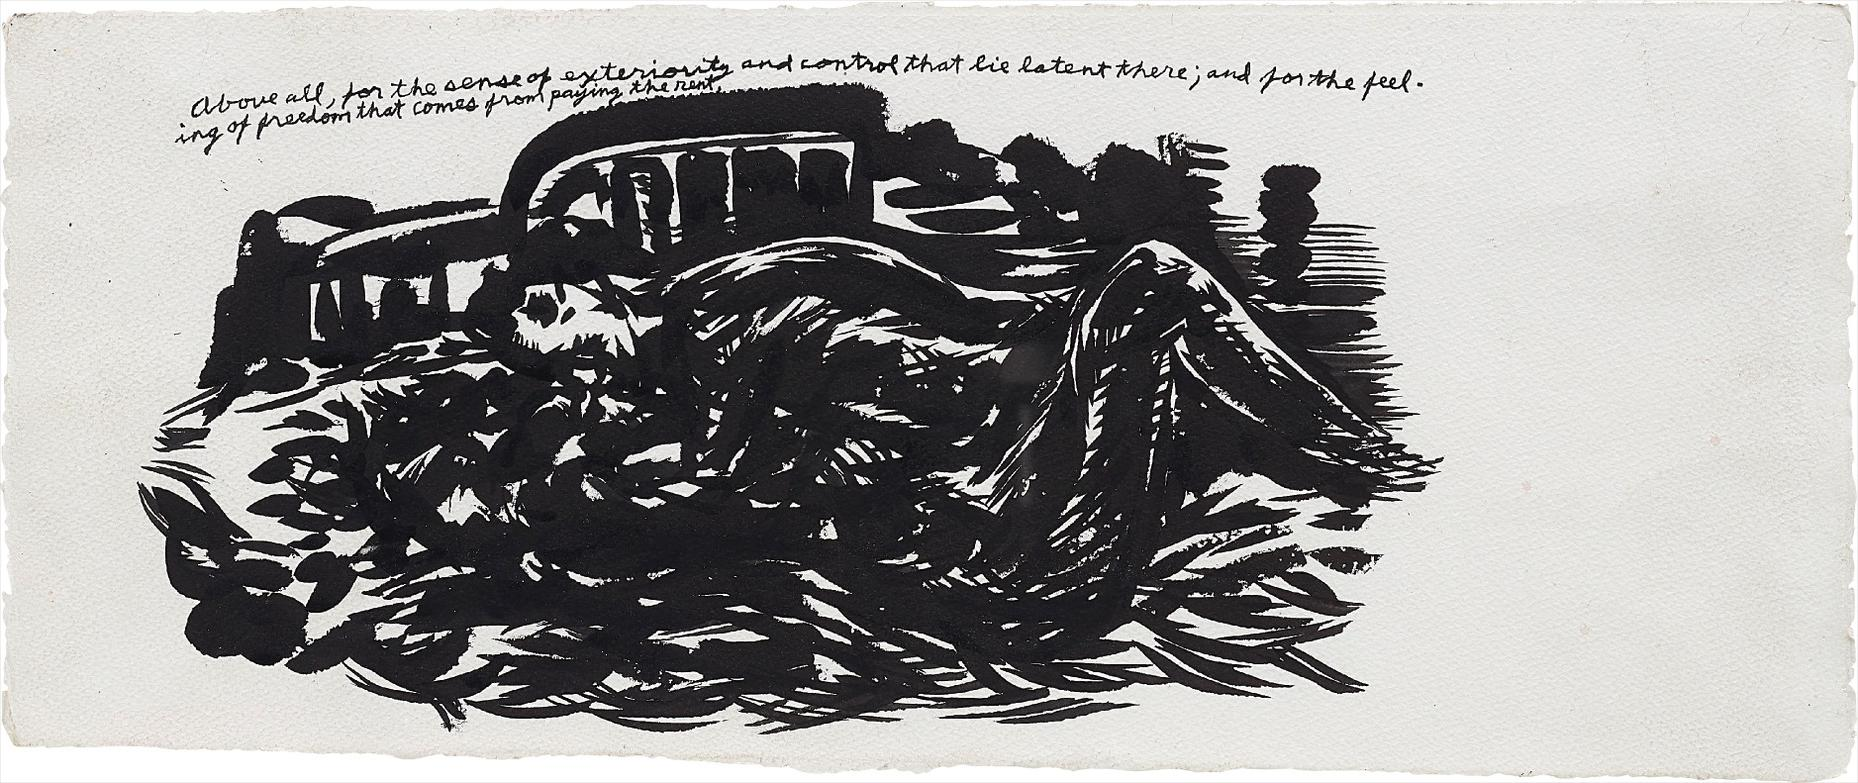 Raymond Pettibon-No Title (Above All, For The Sense Of Exteriority And Control That Lie Latent There; And For The Feeling Of Freedom That Comes From Paying The Rent)-2003